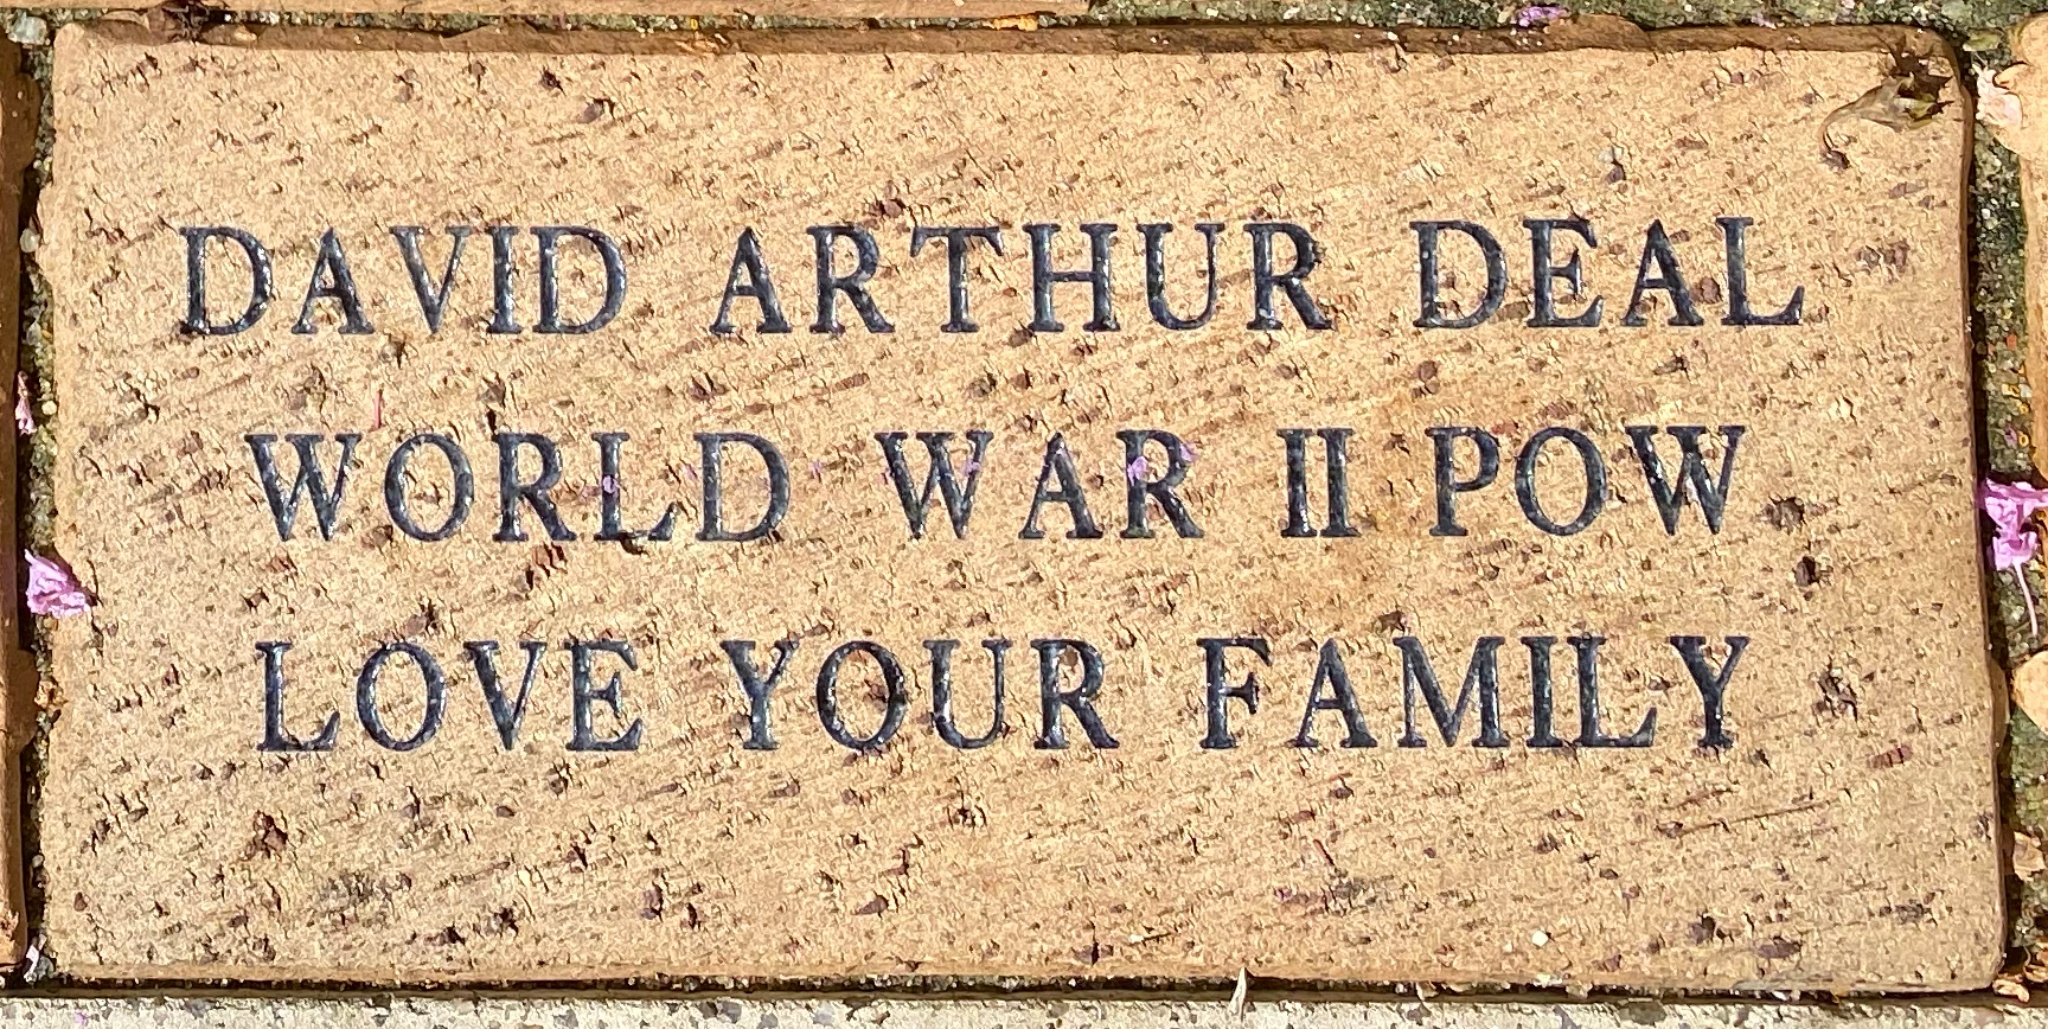 DAVID ARTHUR DEAL WORLD WAR II POW LOVE YOUR FAMILY